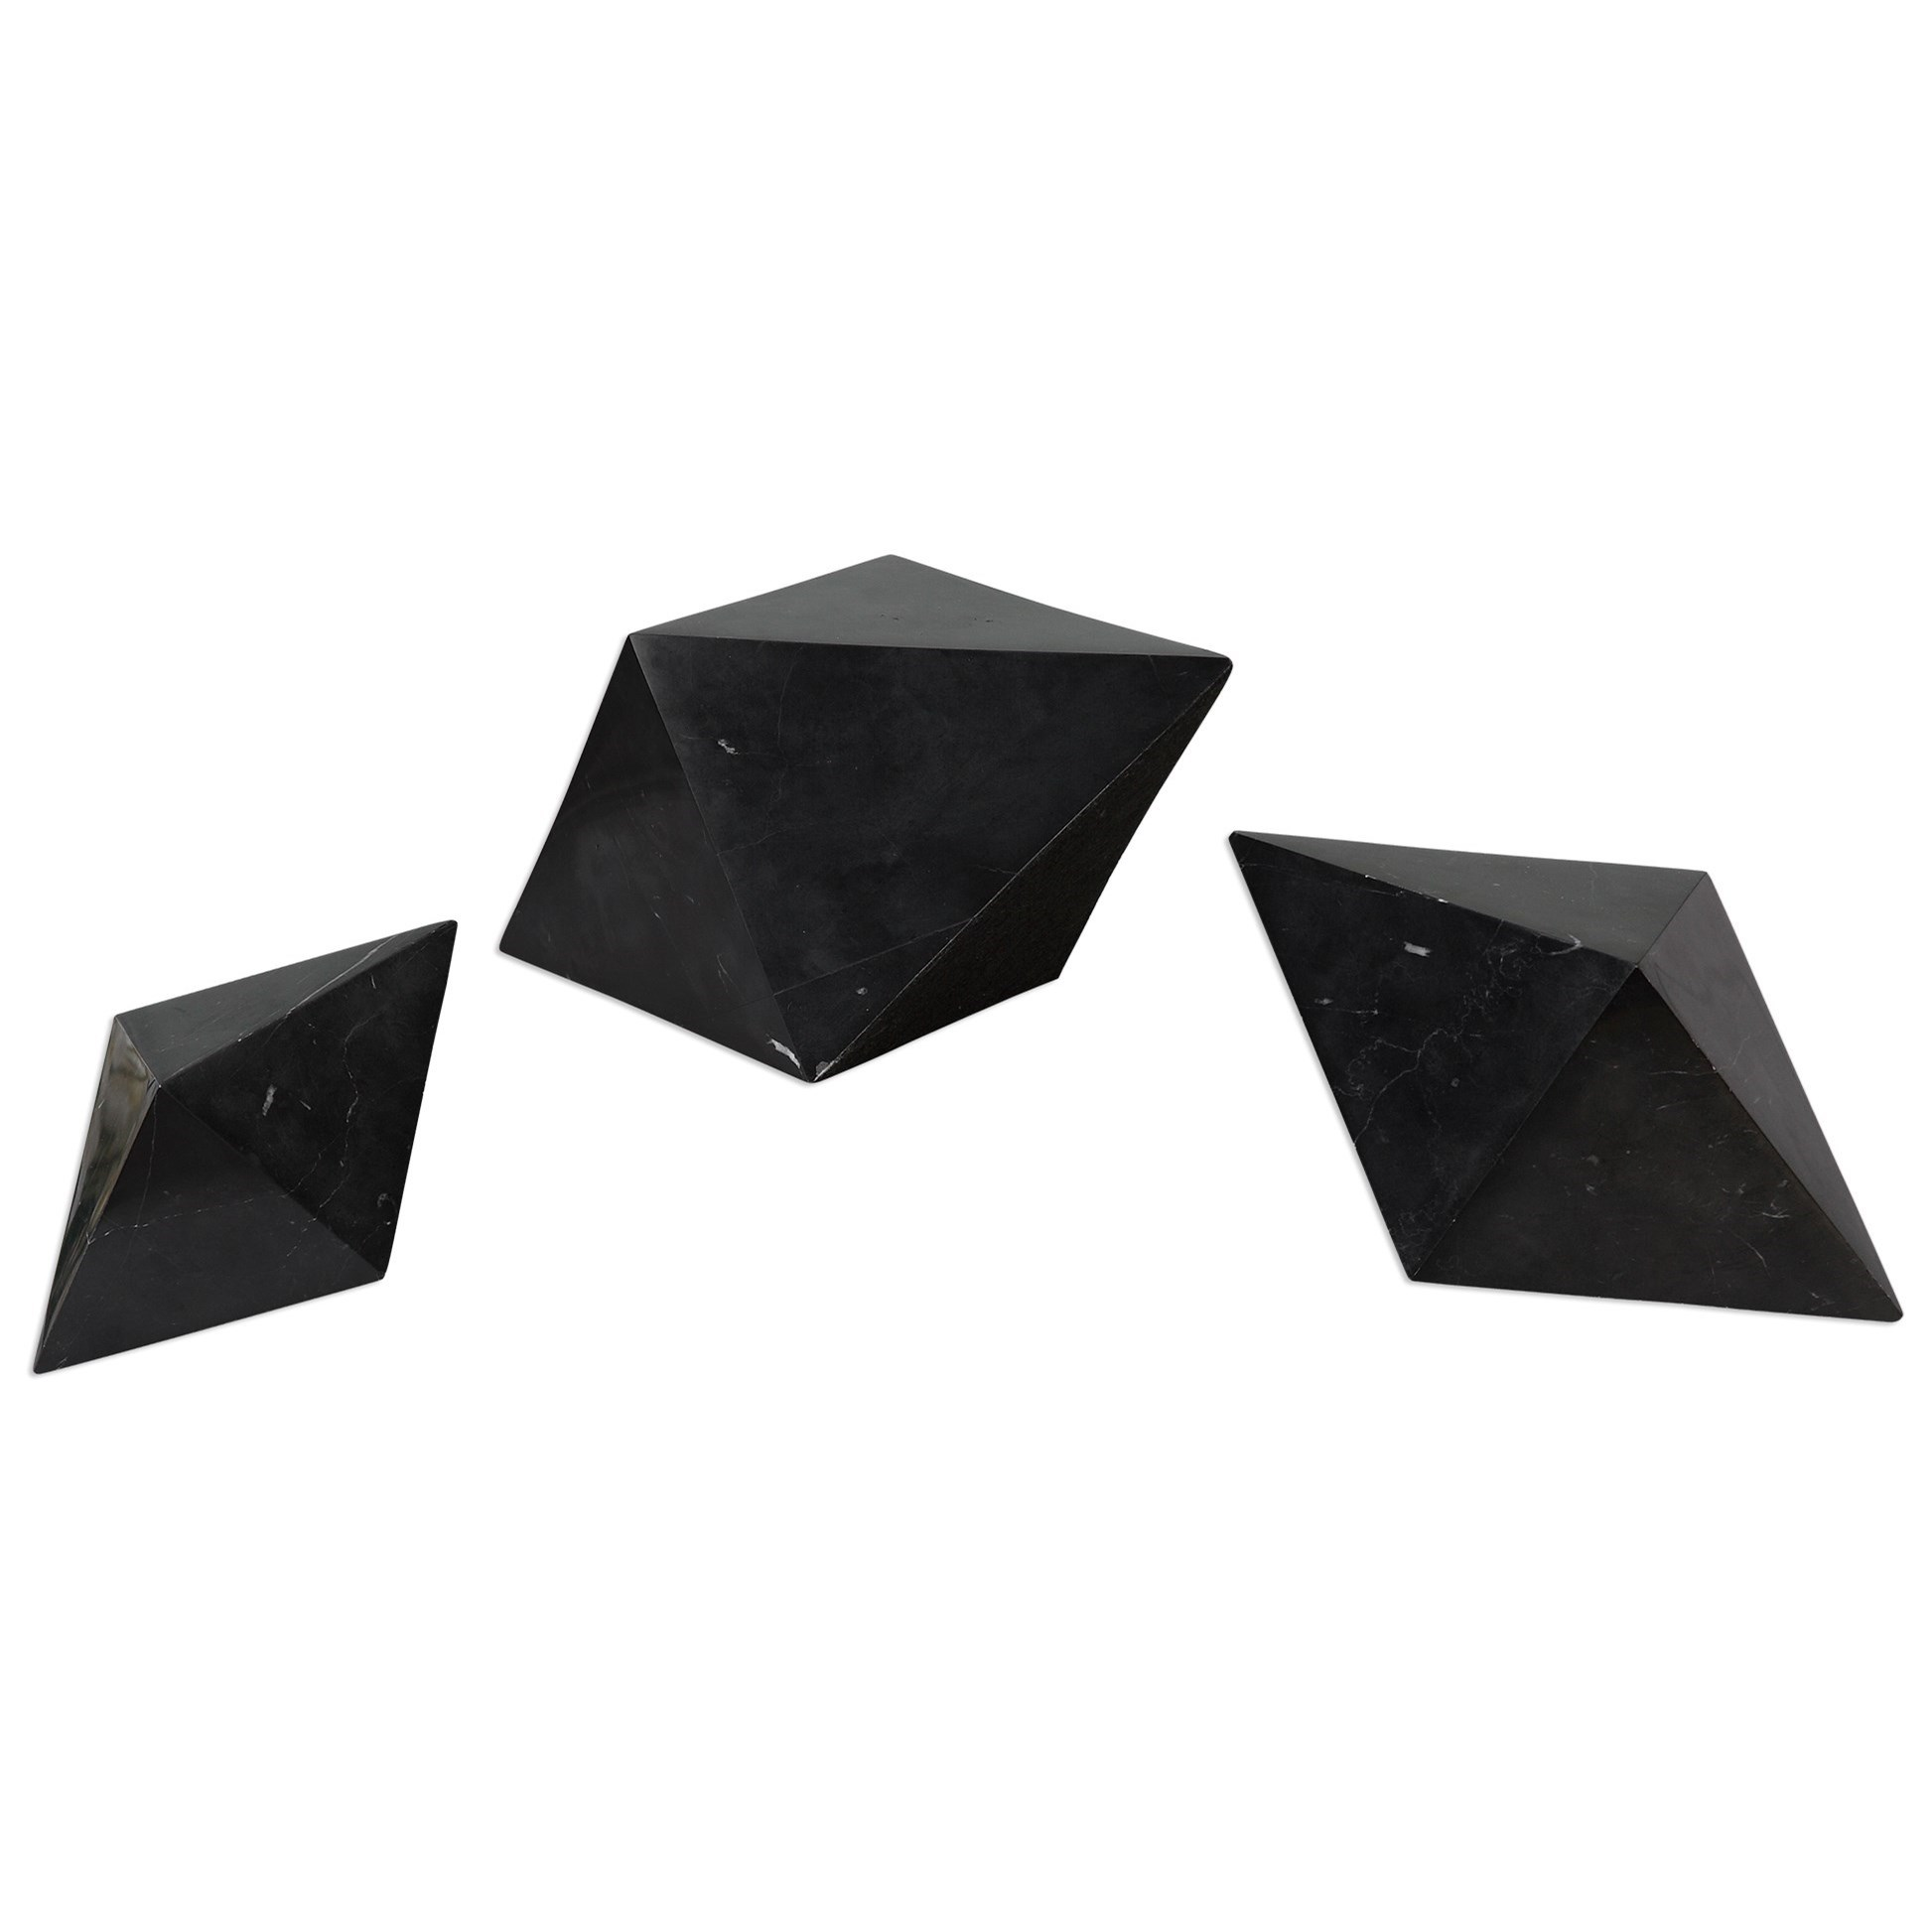 Uttermost Accessories Rhombus Black Marble Sculpture S/3 - Item Number: 20095